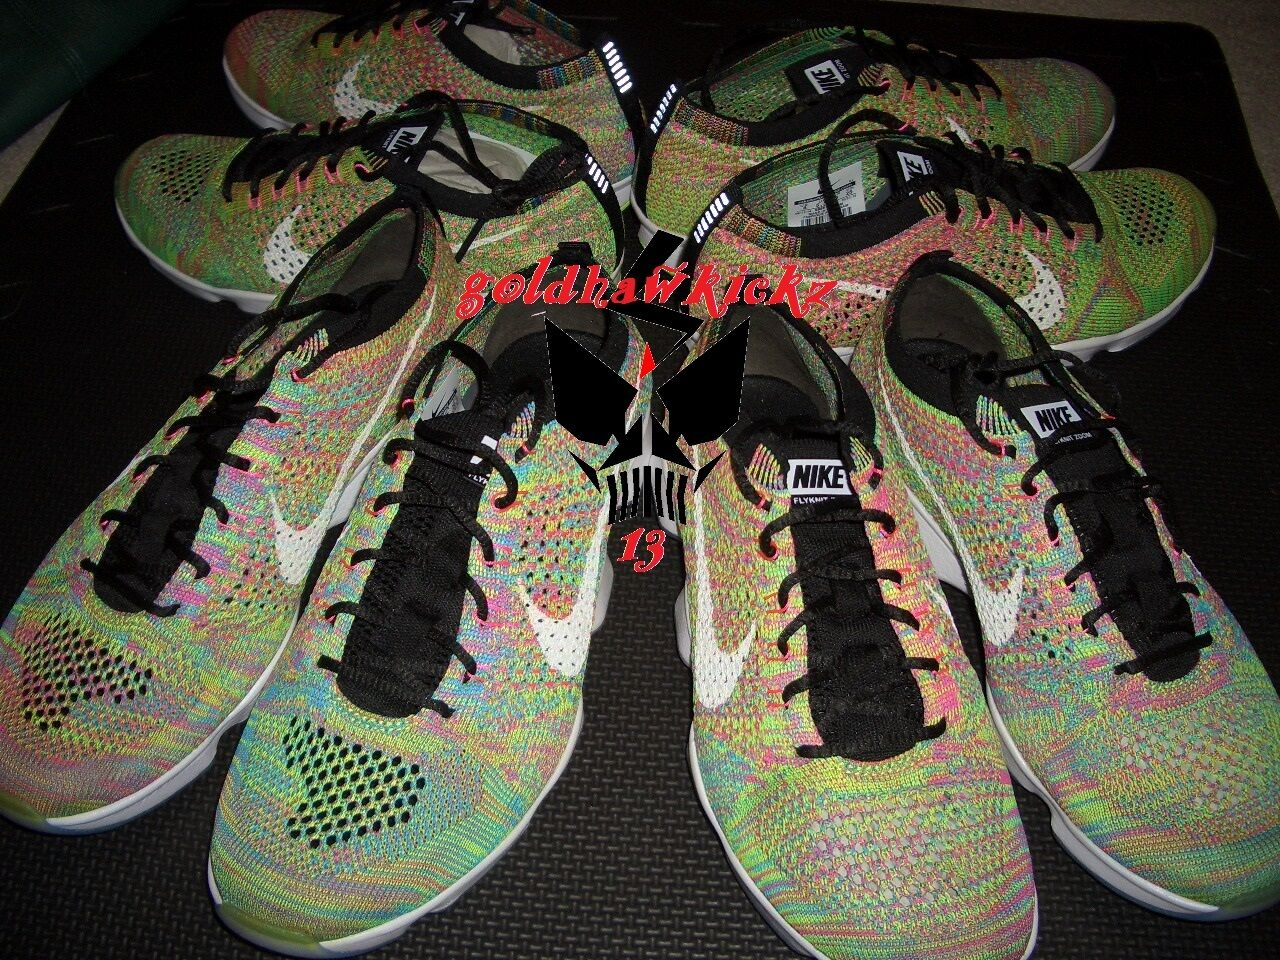 Nike Flyknit Zoom Agility Multicolor MC Racer Trainer 698616 002